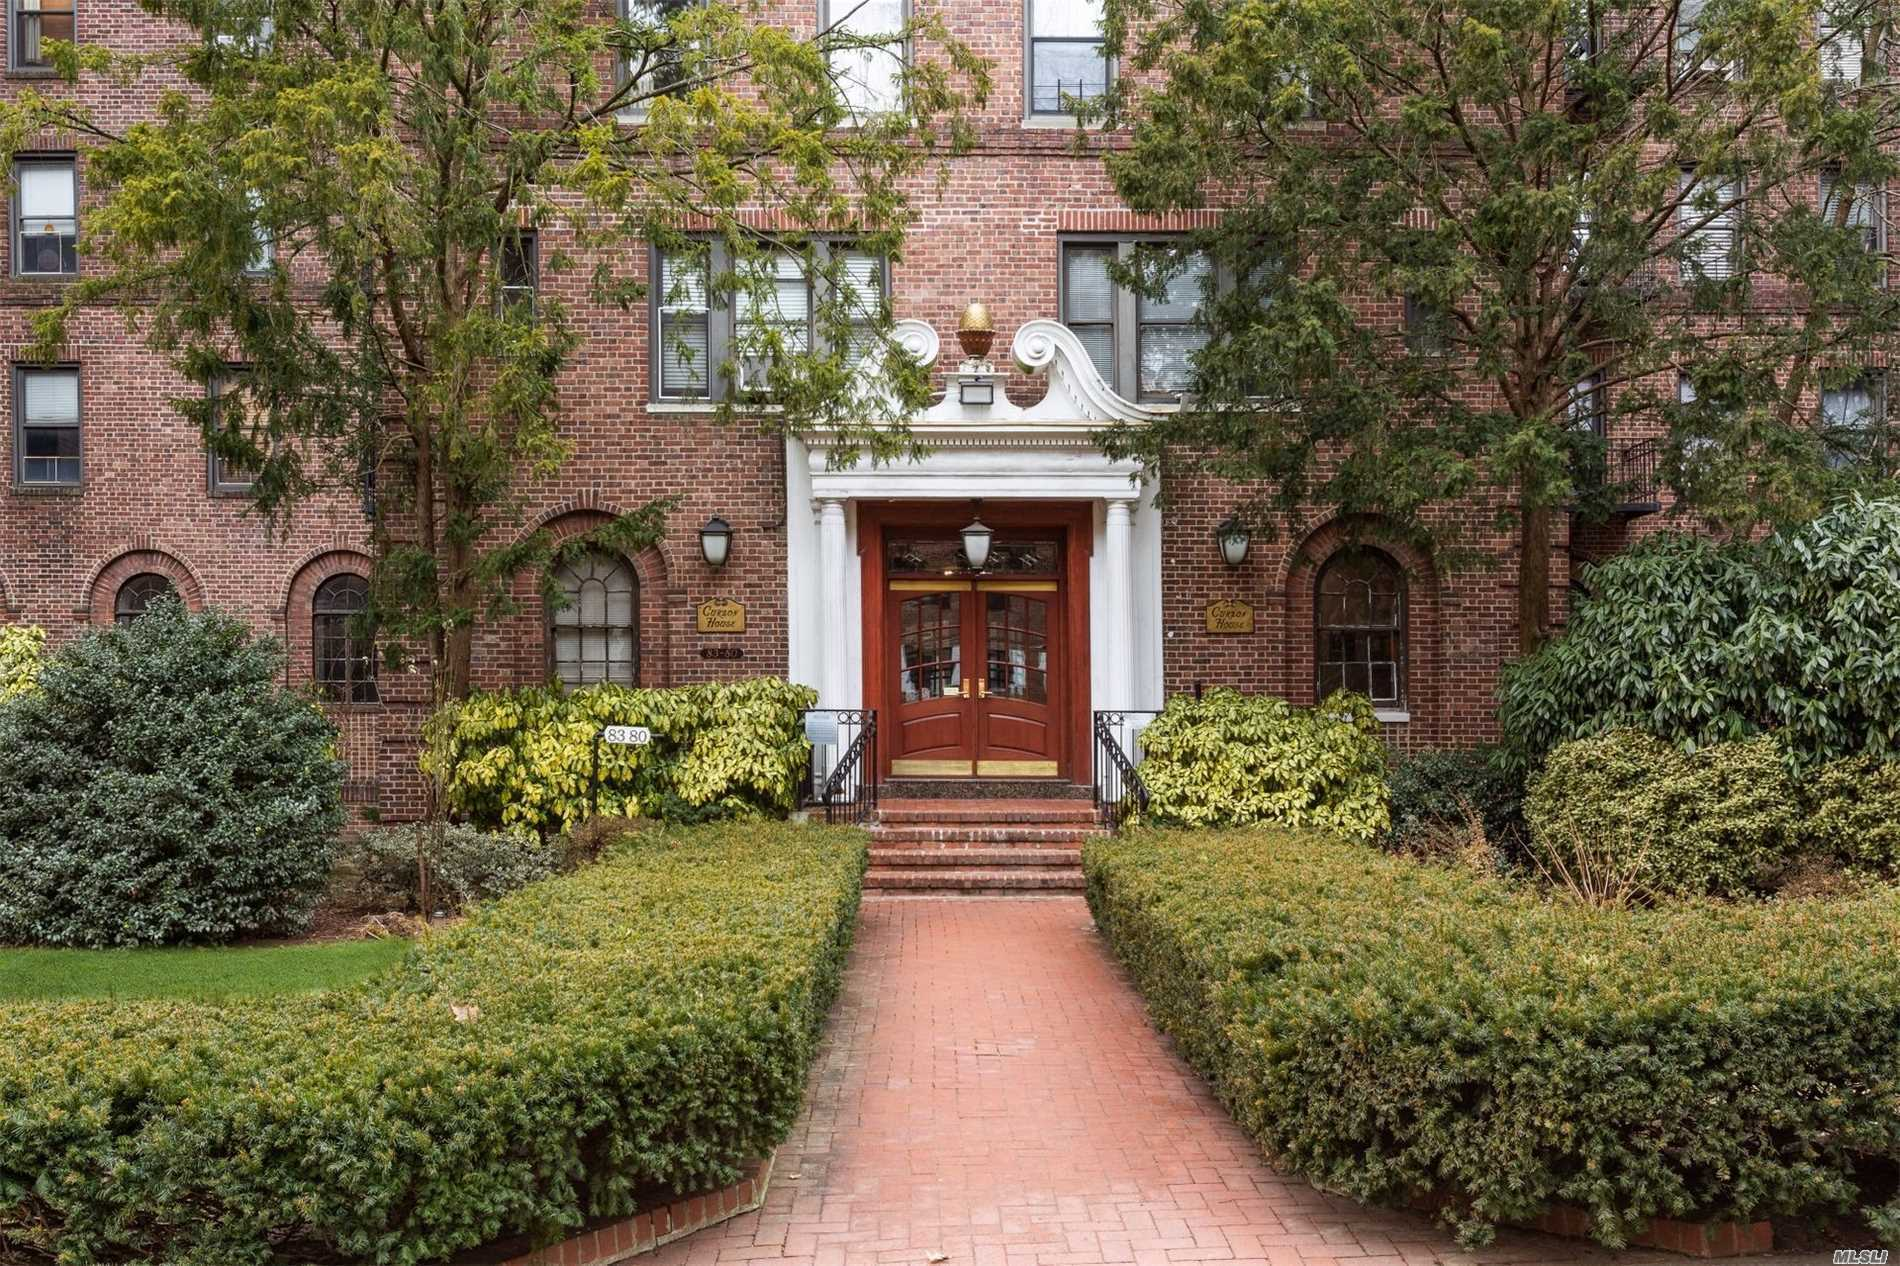 Spacious Bright Alcove Studio Pre War Co-Op, 9Ft Ceilings Large Windows, Wood Floors, Lots Of Closets Space, Eat-In Kitchen, Very Quiet Unit,  Pet-Friendly, Extra Storage Available In The Building, Curzon House Is A Beautiful Building, Conviently Located Close To Forest Park, Subway Line E, F, Lirr